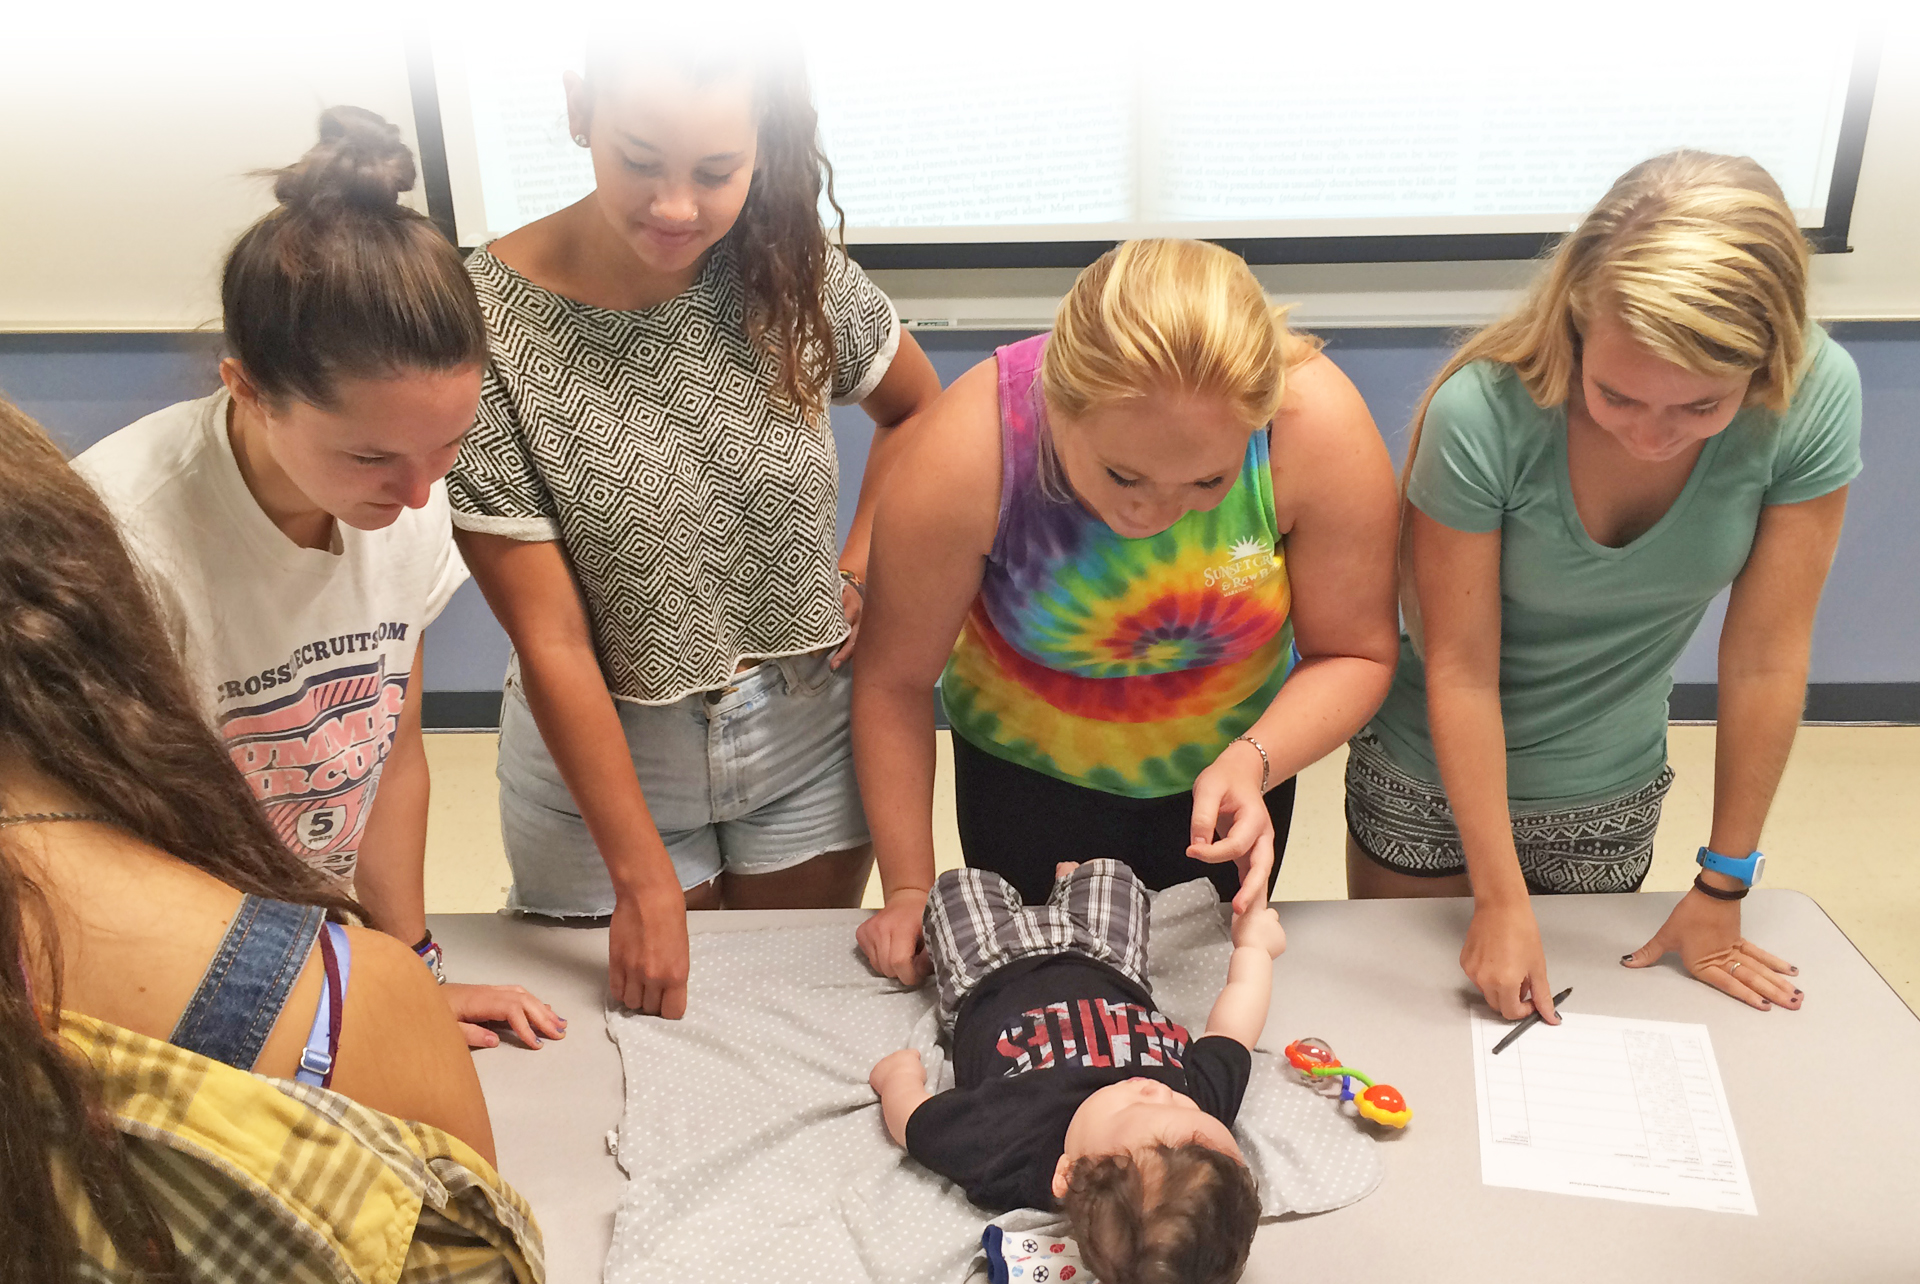 Students studying infant reflexes in Introduction to Human Development